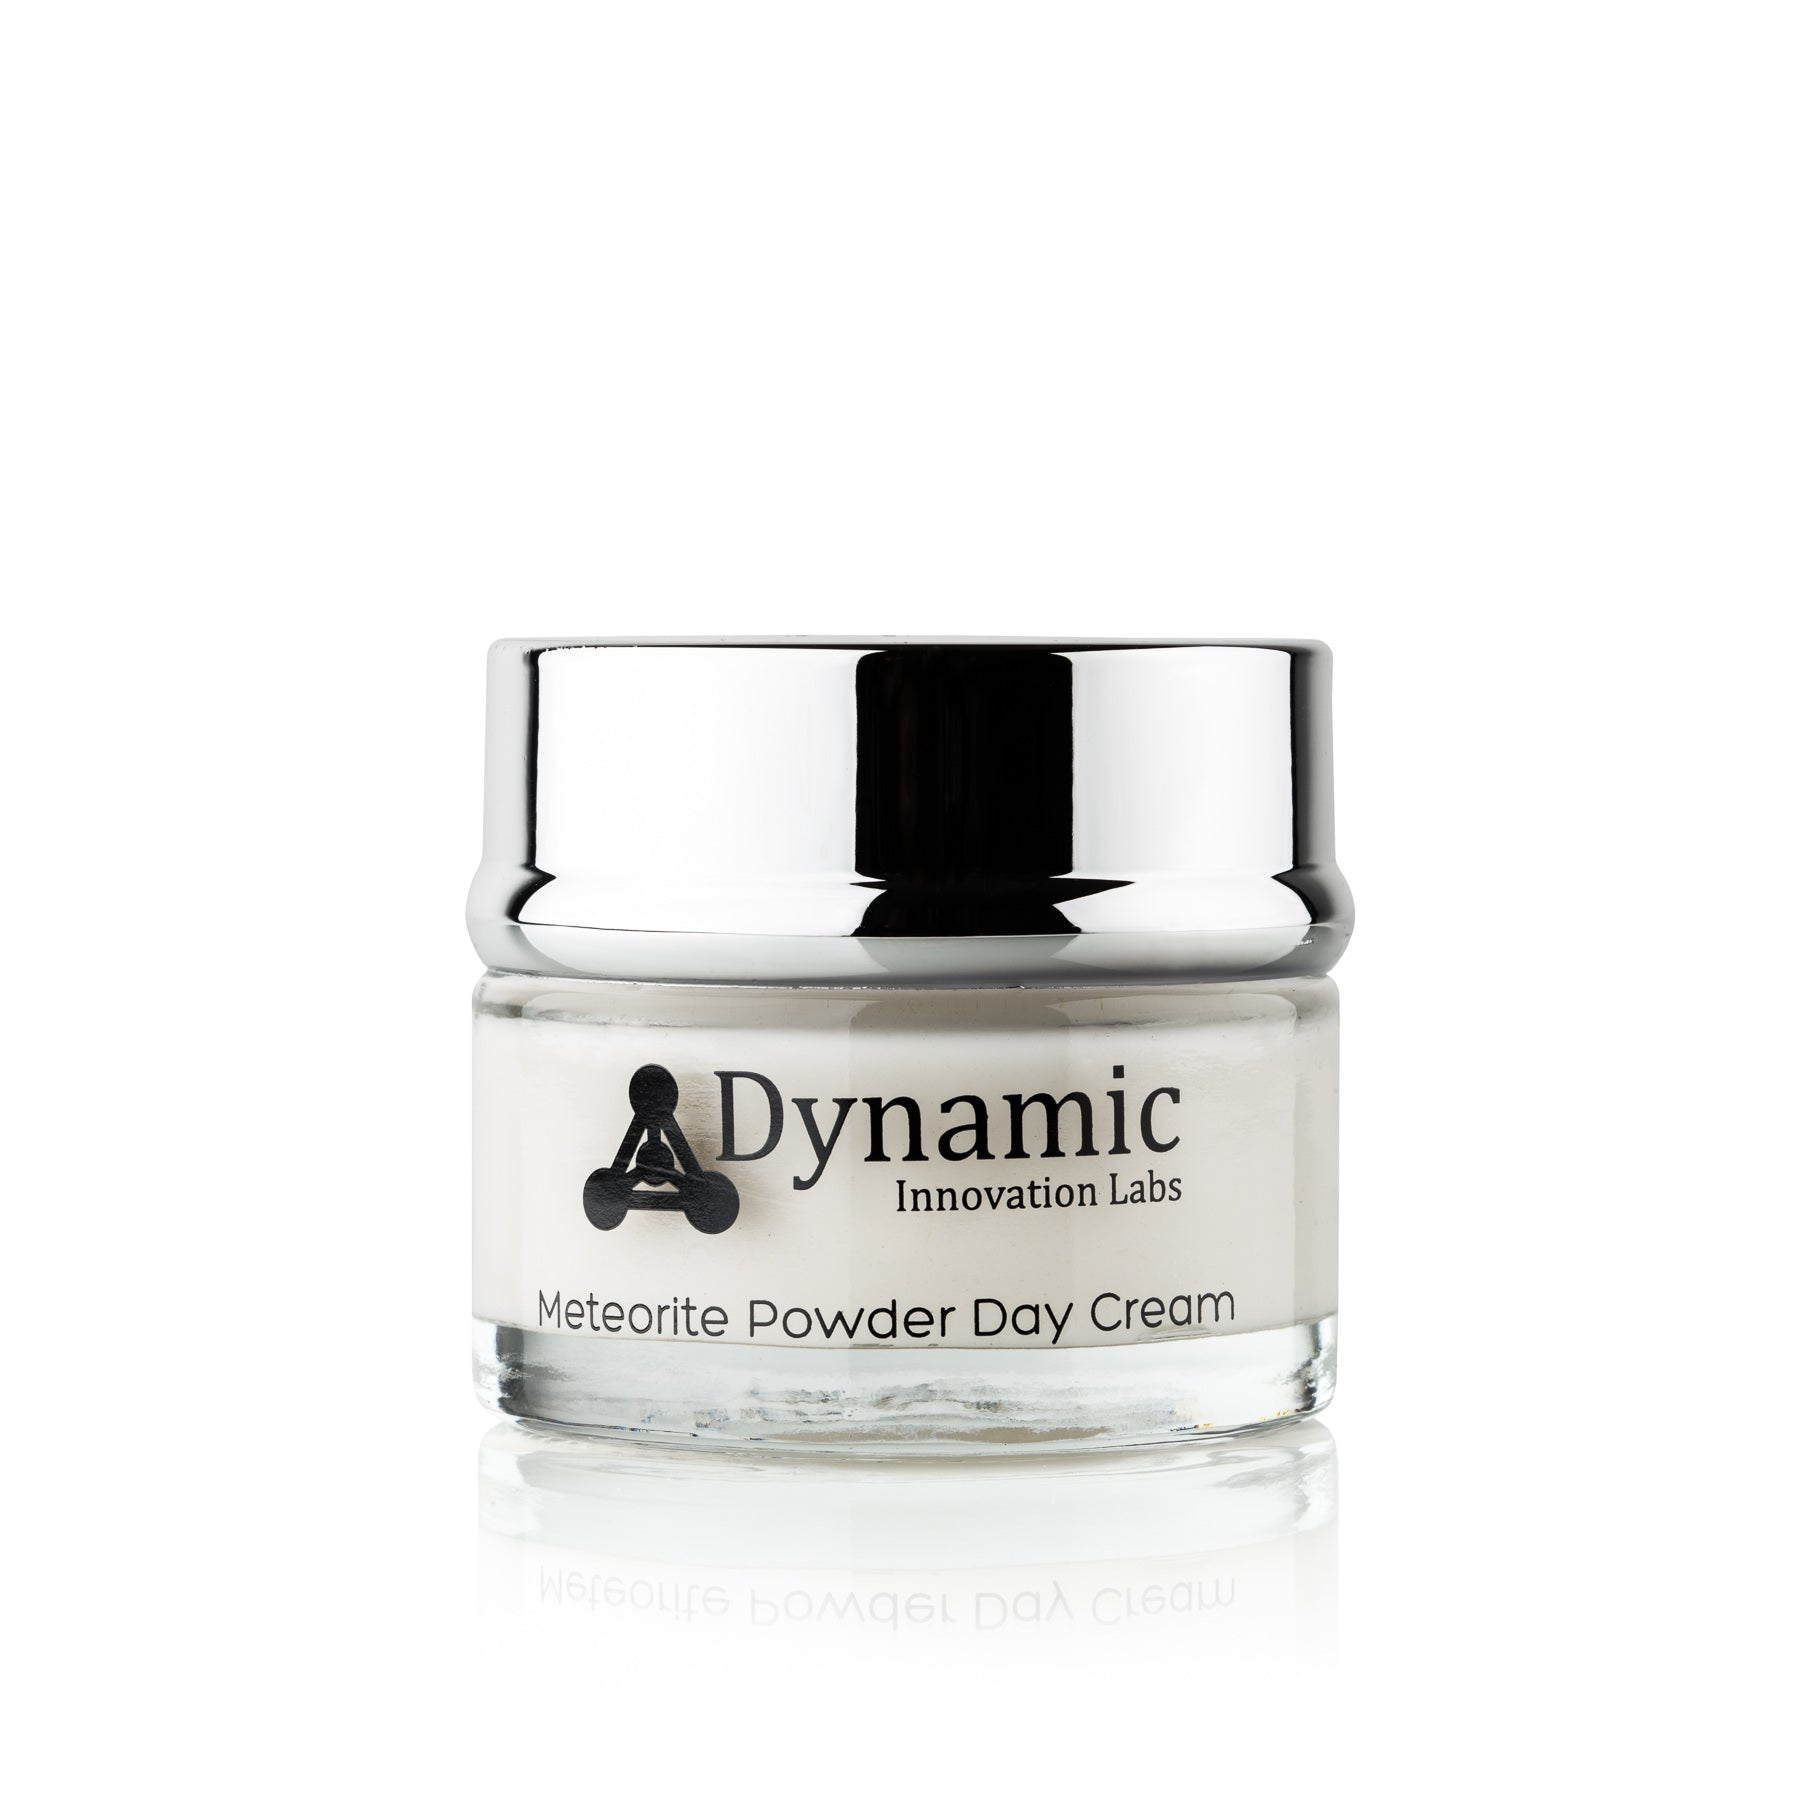 DYNAMIC INNOVATION - 24K Gold Meteorite Powder Day Cream and Wrinkle Reducer